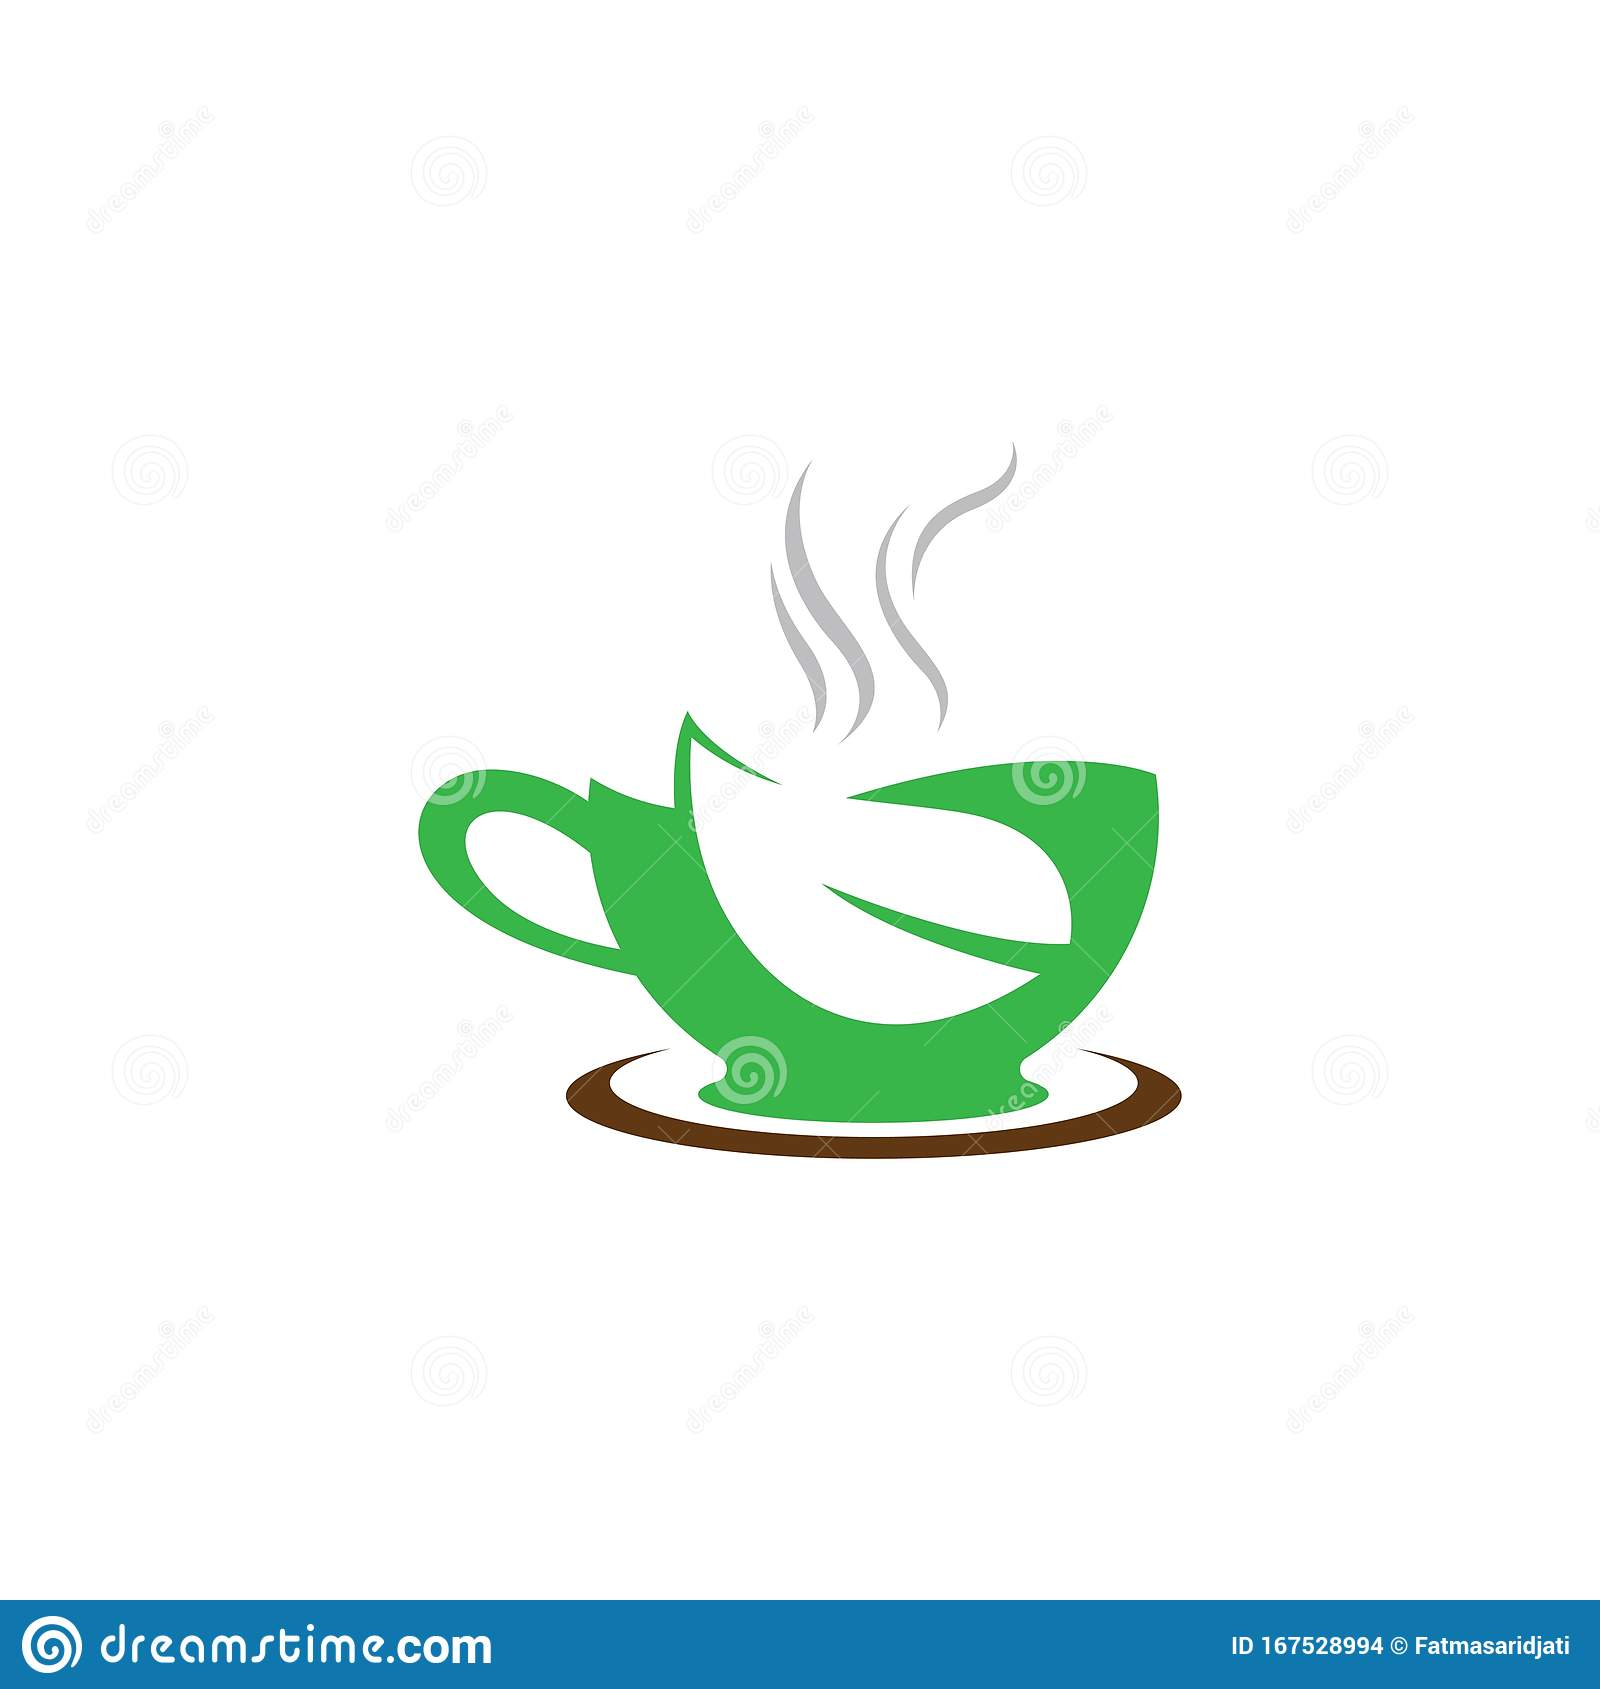 green tea vector logo illustration stock vector illustration of organic element 167528994 https www dreamstime com green tea vector logo illustration cup template icon design beverage teapot kitchen kettle food health fresh concept organic image167528994